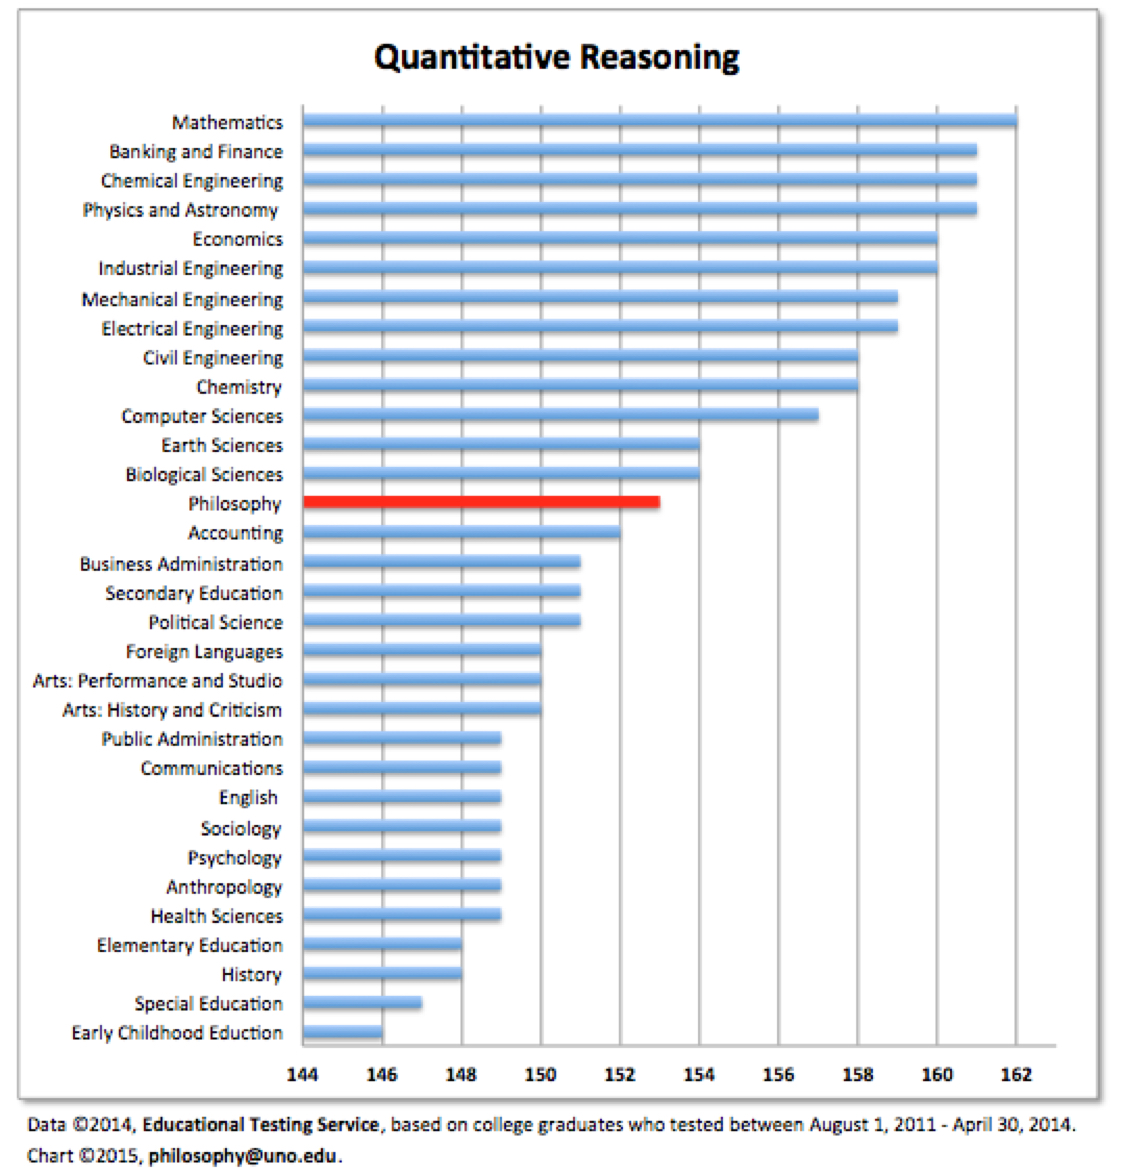 Chart showing quantitative reasoning score by graduate.  philosophy ranks 14th of the 30-plus majors shown with a score of approx. 153.